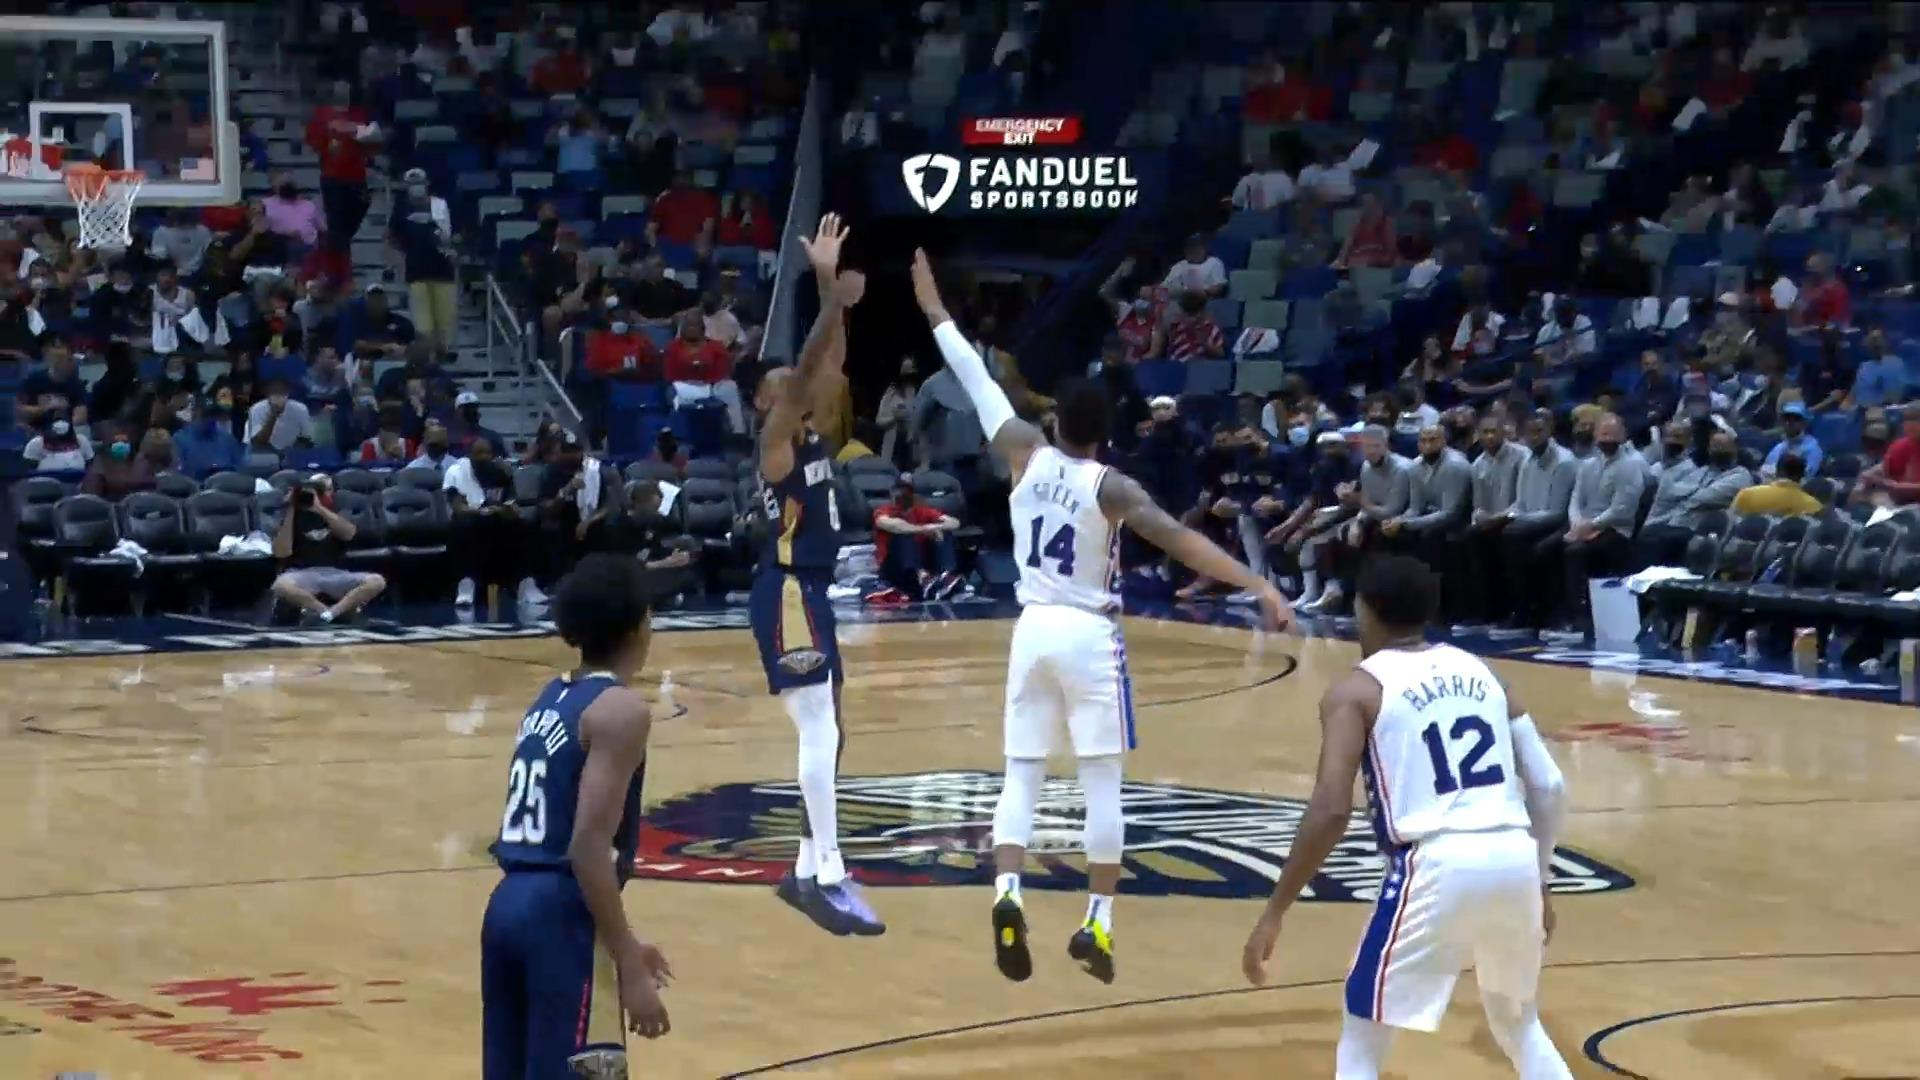 Nickeil Alexander-Walker with a pair of triples | Pelicans-76ers Highlights